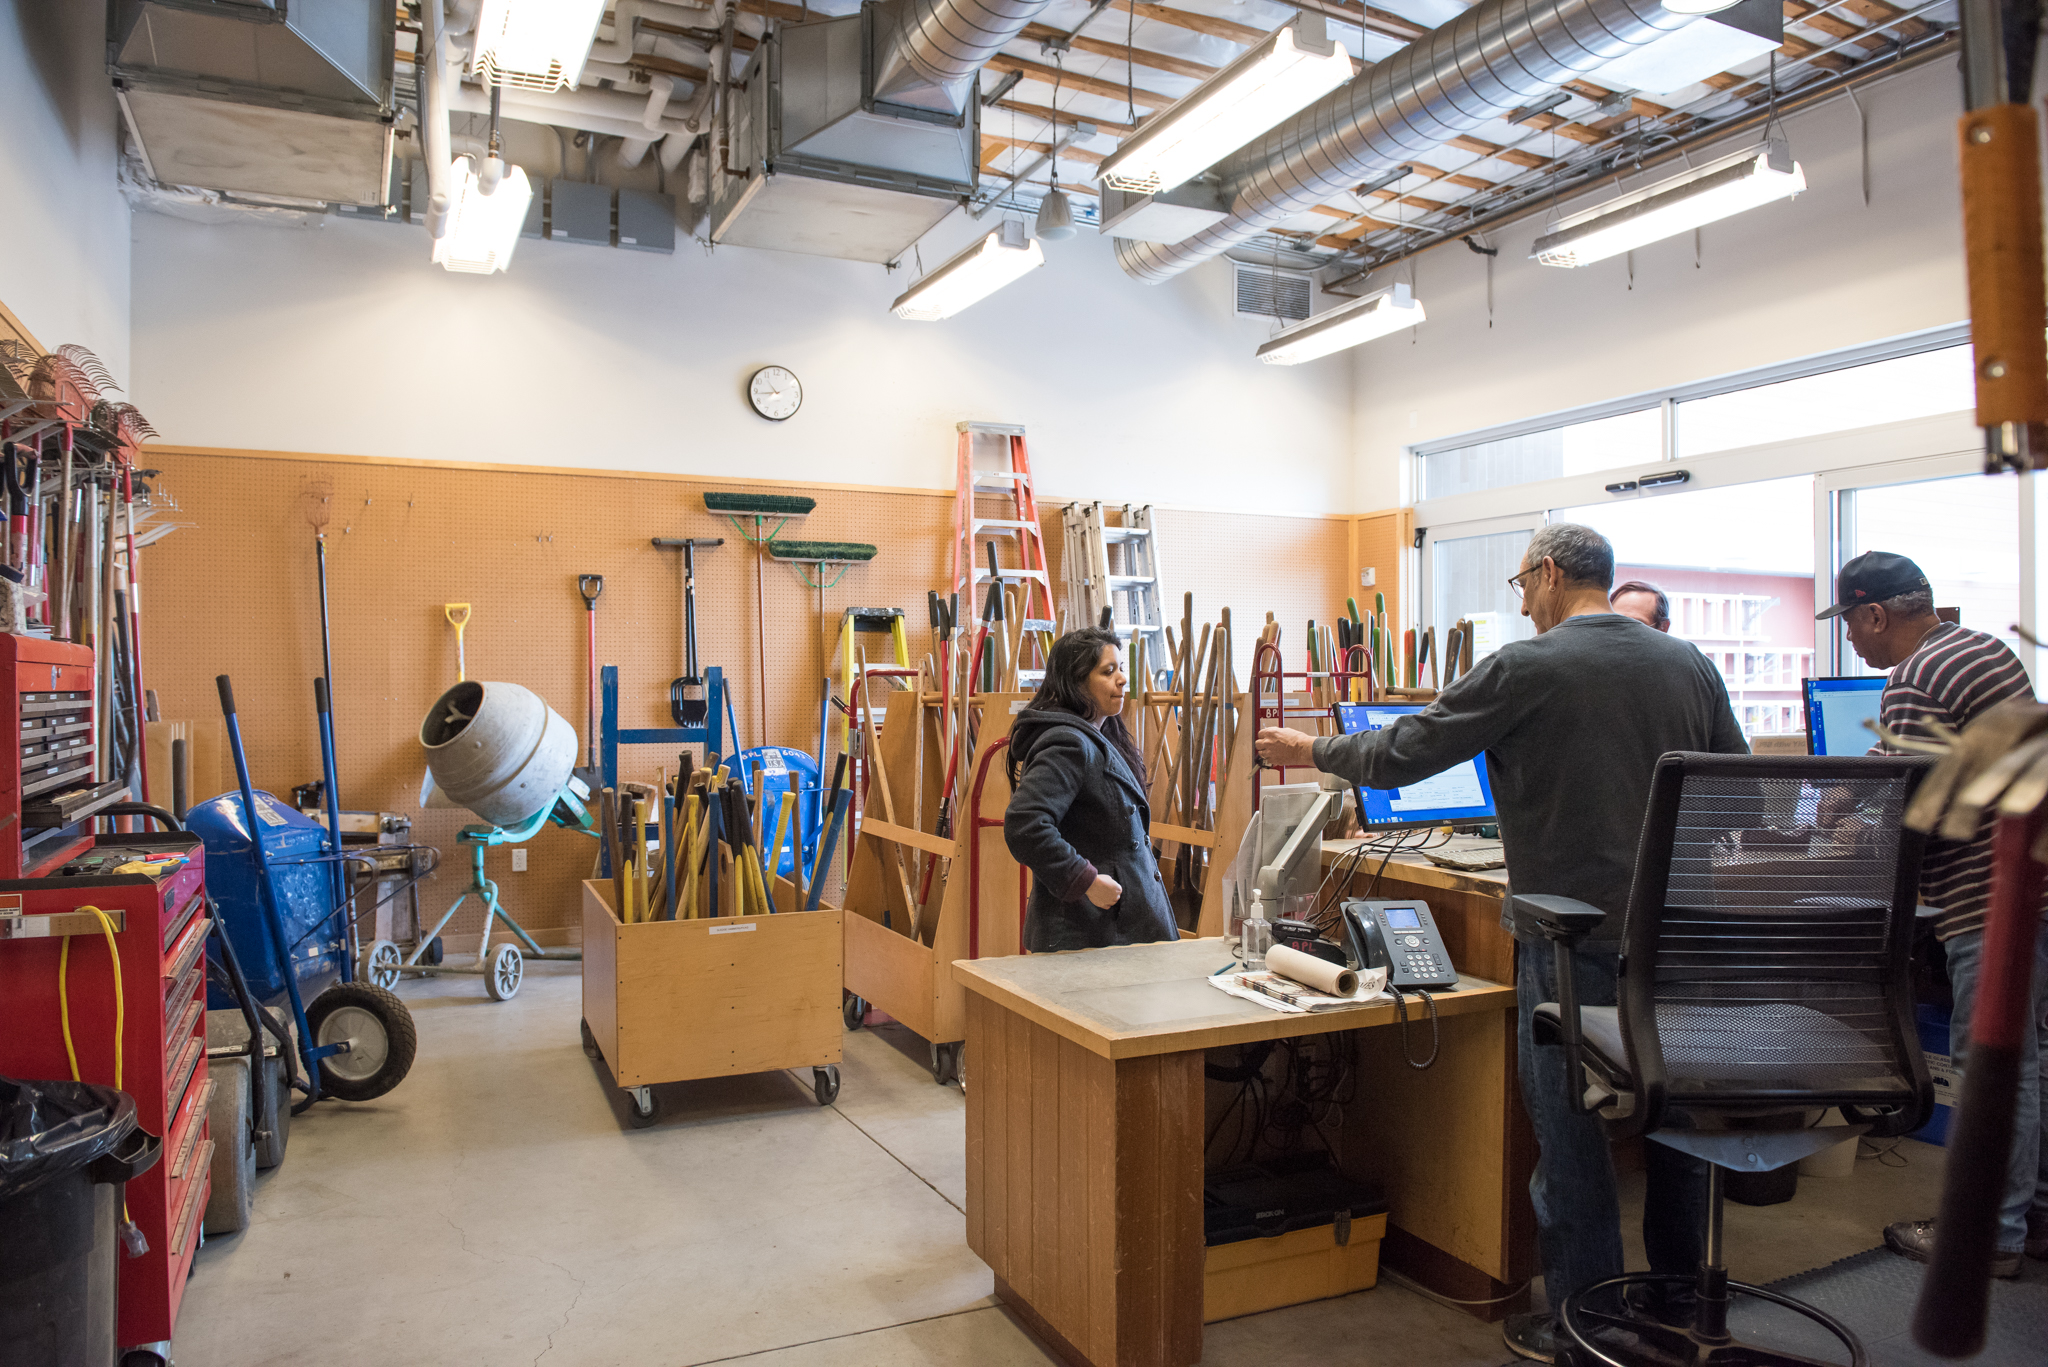 One of the Bay Area's best free services is tucked away in a Berkeley library